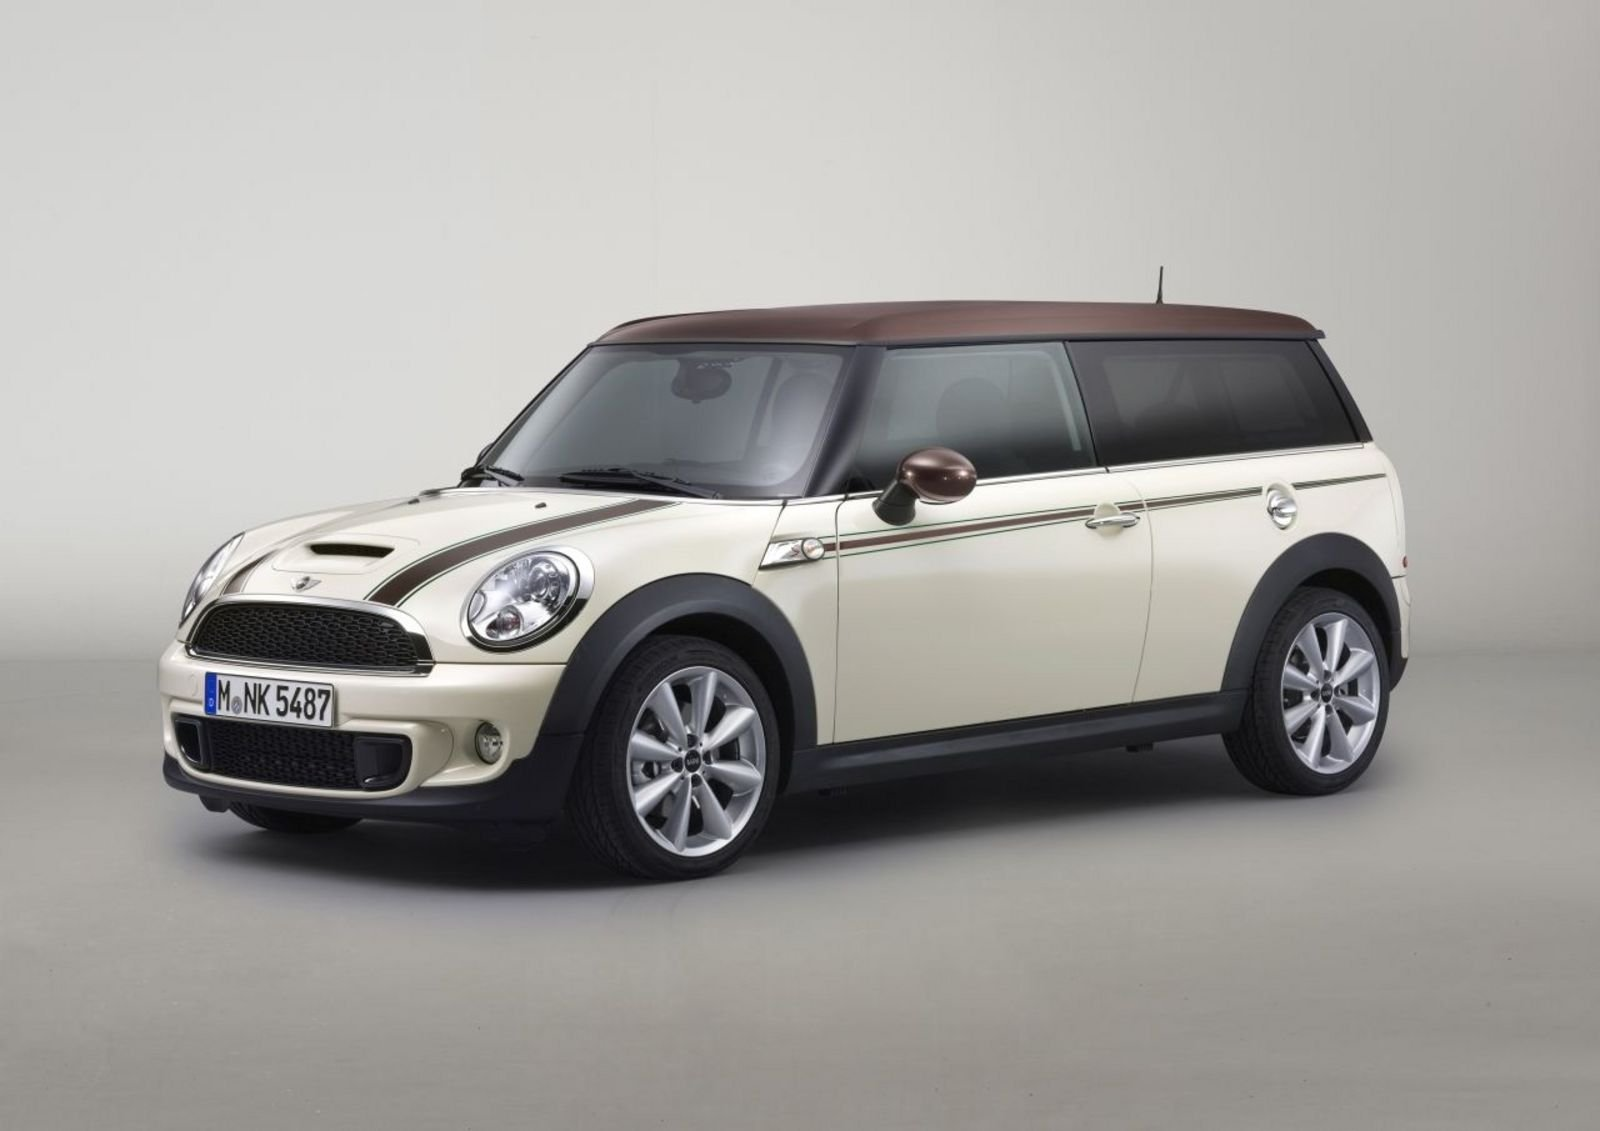 hight resolution of 2012 mini clubman hyde park edition